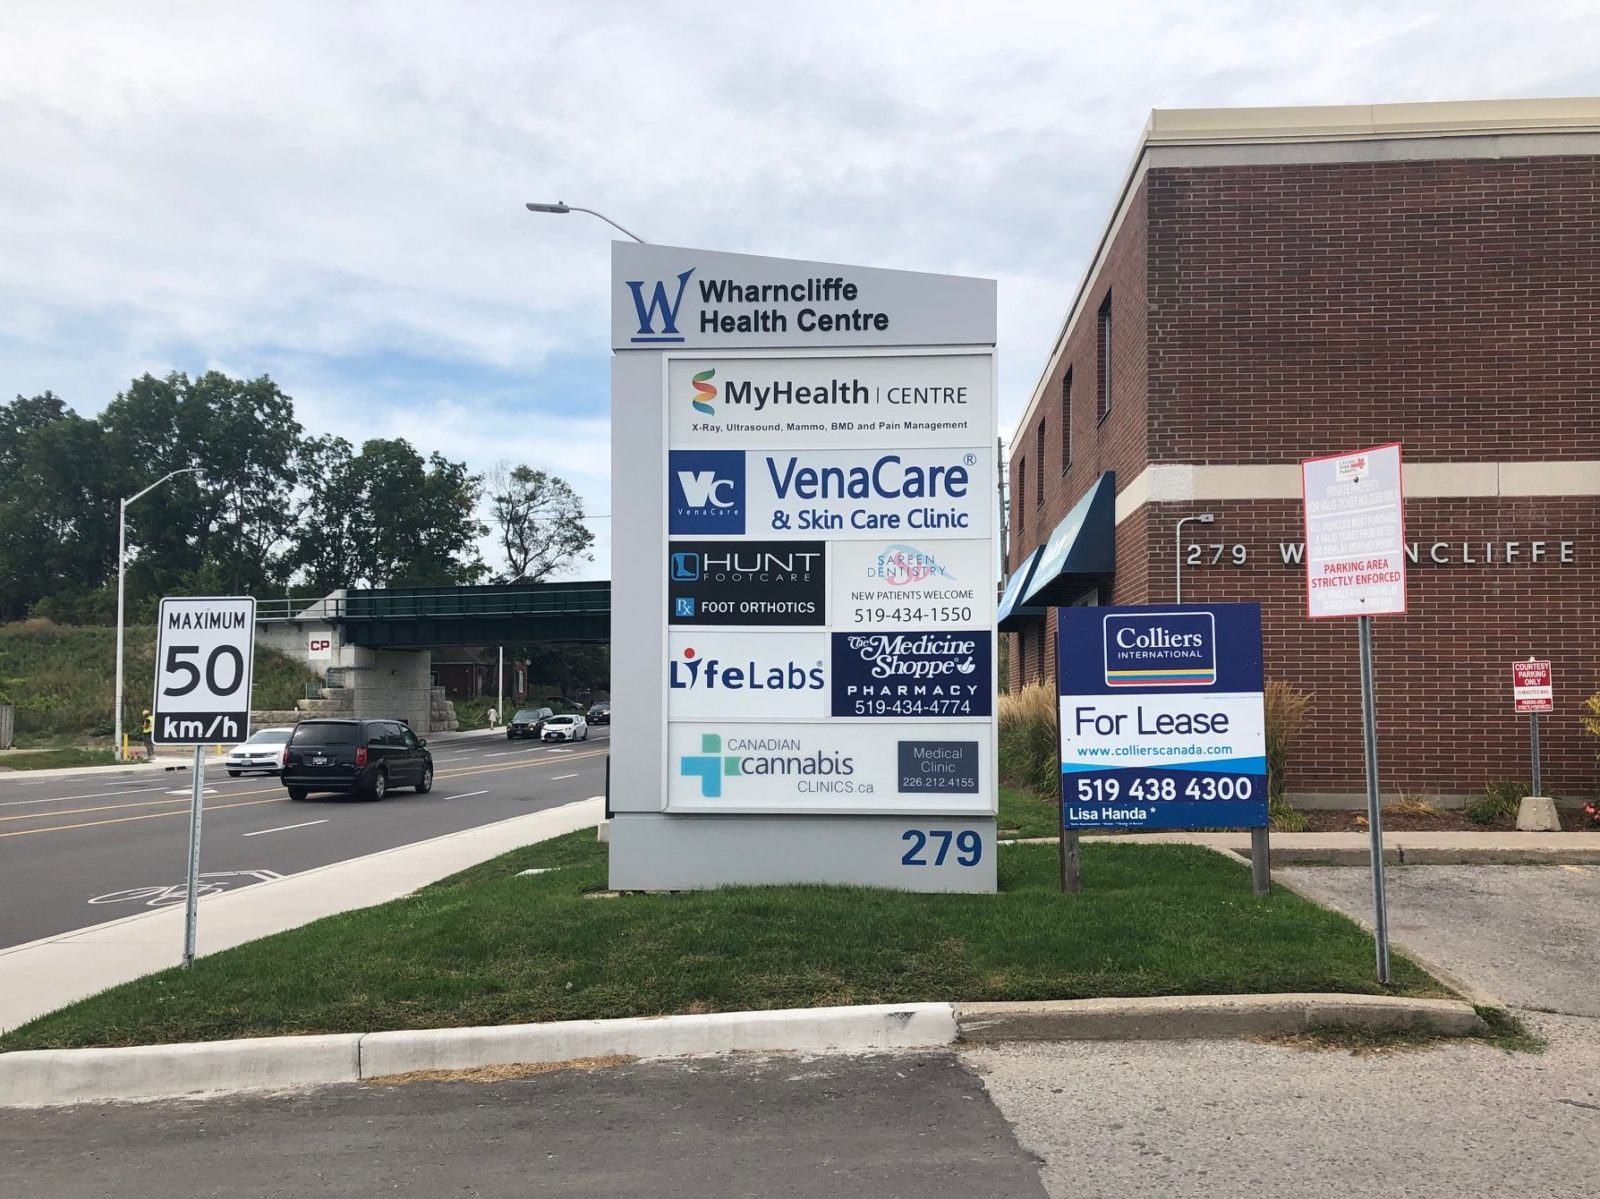 Wharncliffe Health Centre Pylon Sign